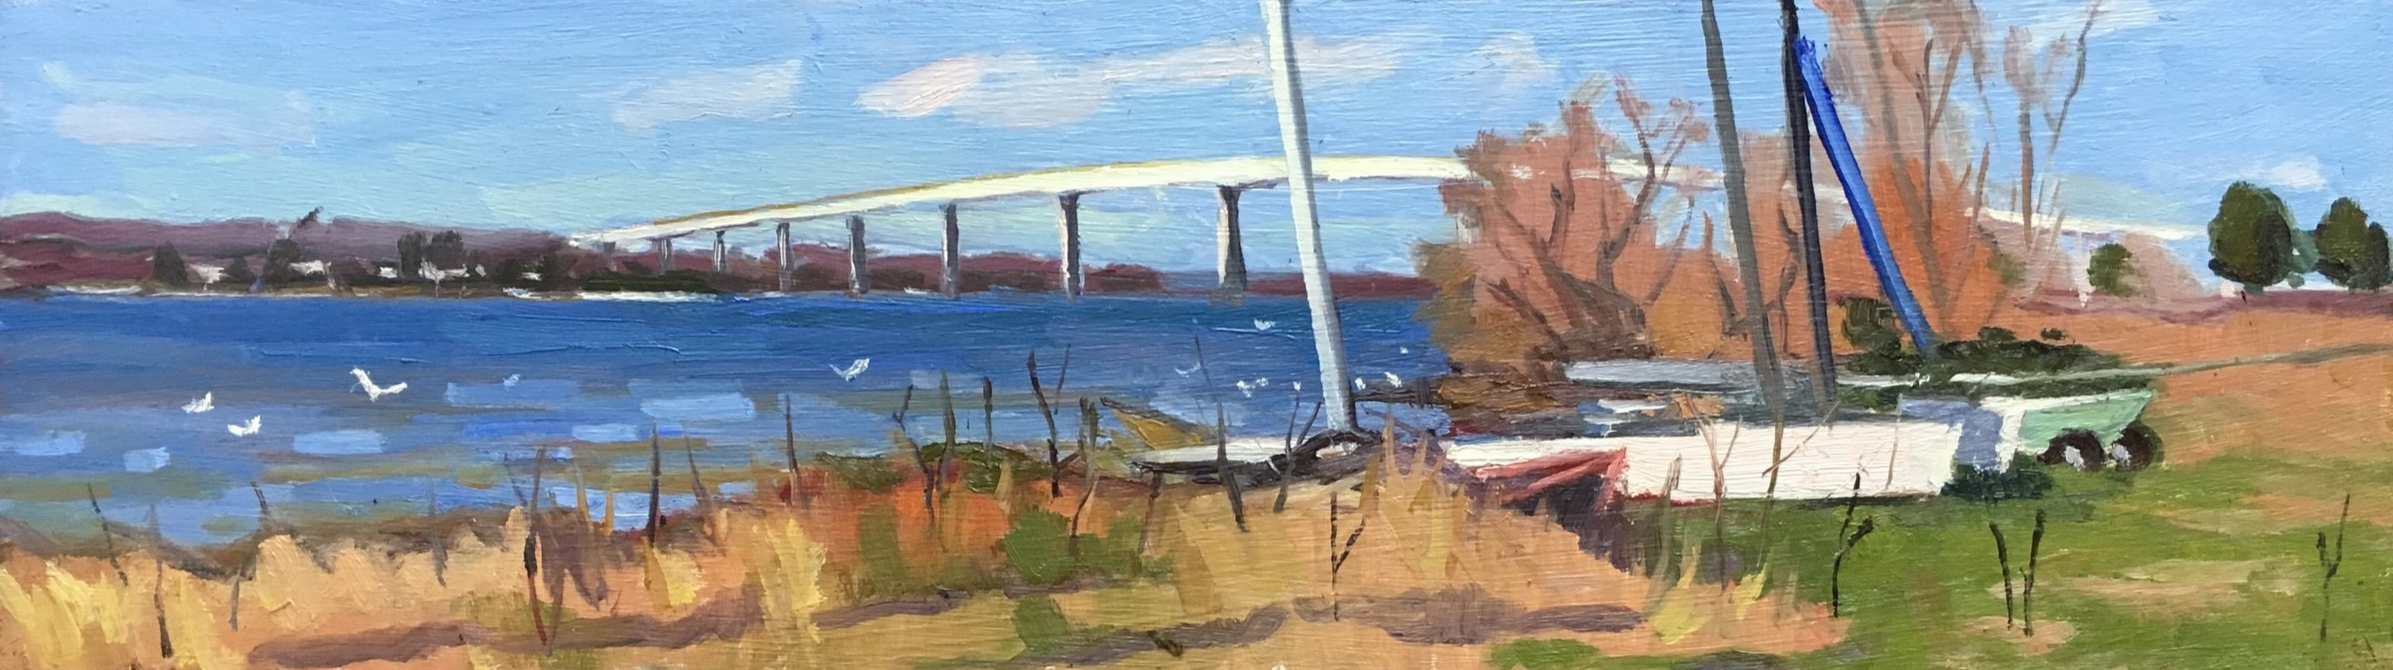 Boats by the Patuxent